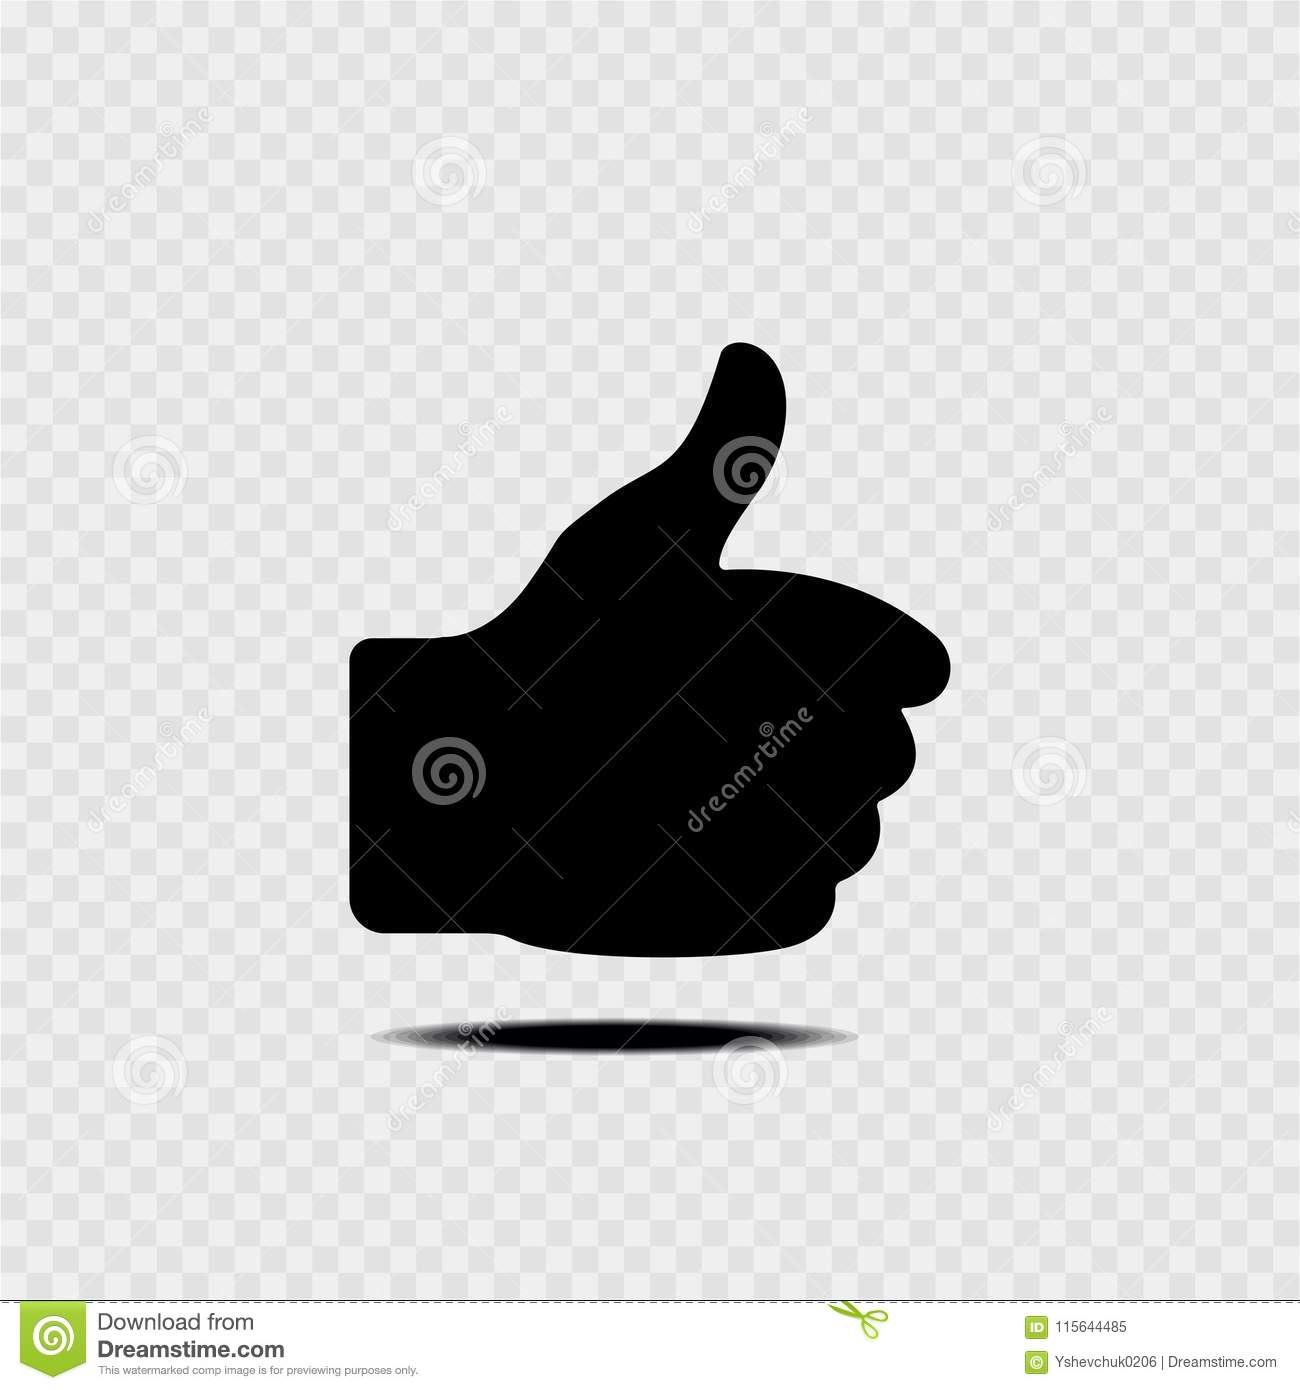 Thumb up sign. Gray background.Vector illustration.